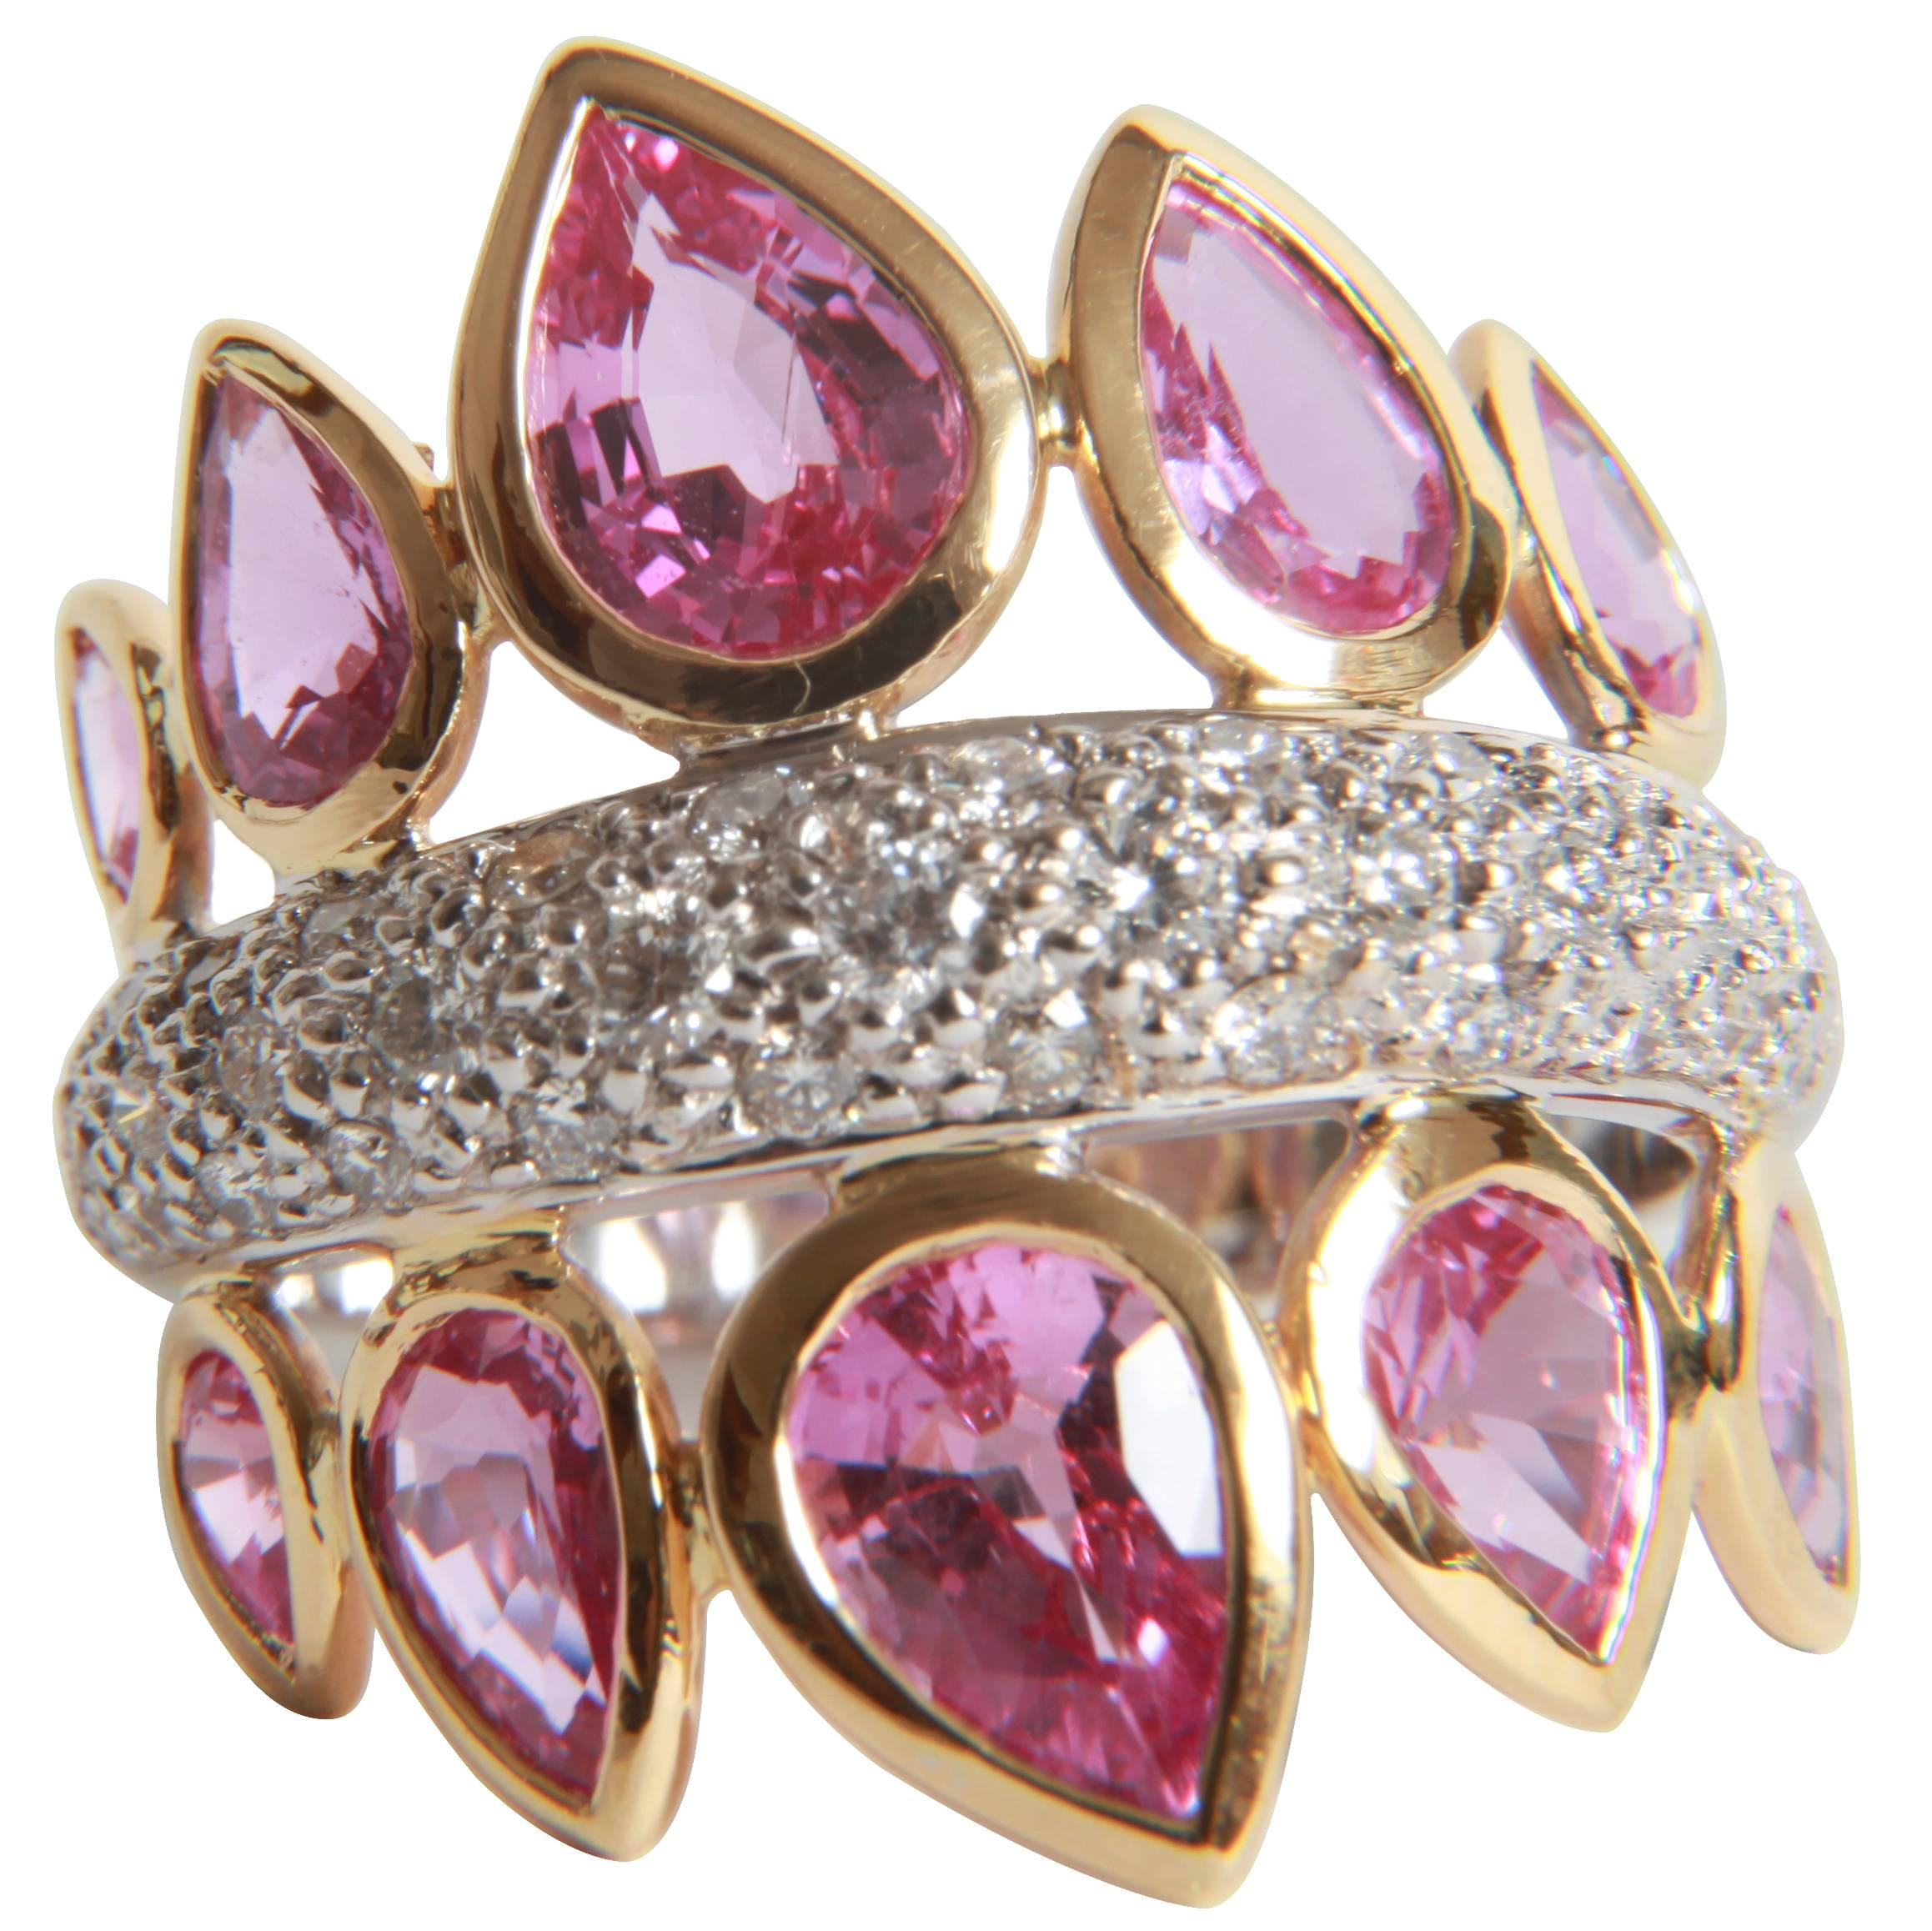 4,74 Carats Pink Sapphires and 1 Carat White Diamonds Ring by Marion Jeantet